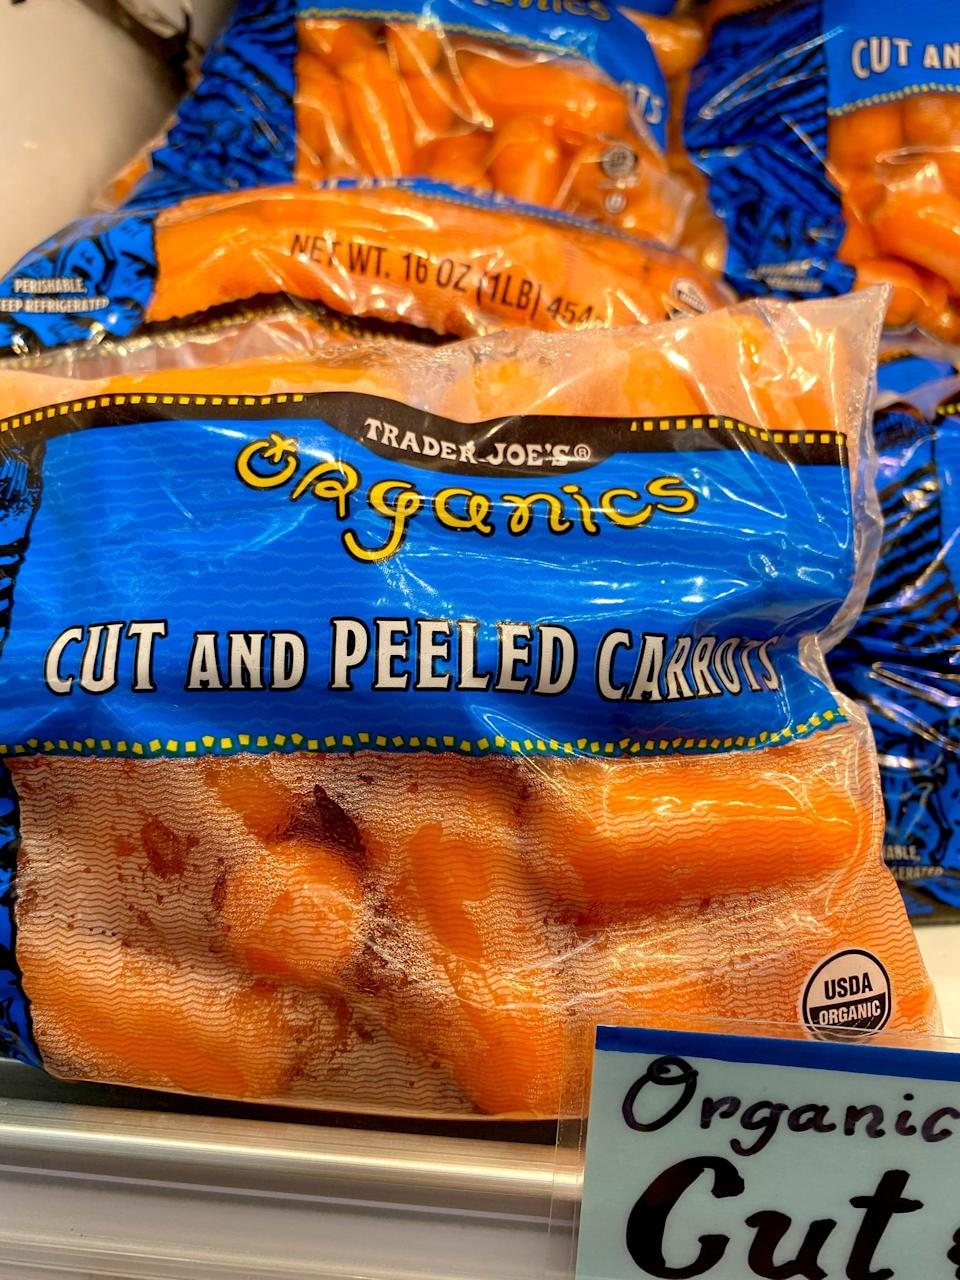 <p>Again, I could peel and cut my own carrots, but these are so easy! I like to munch on a handful while my lunch is heating in the microwave.</p>